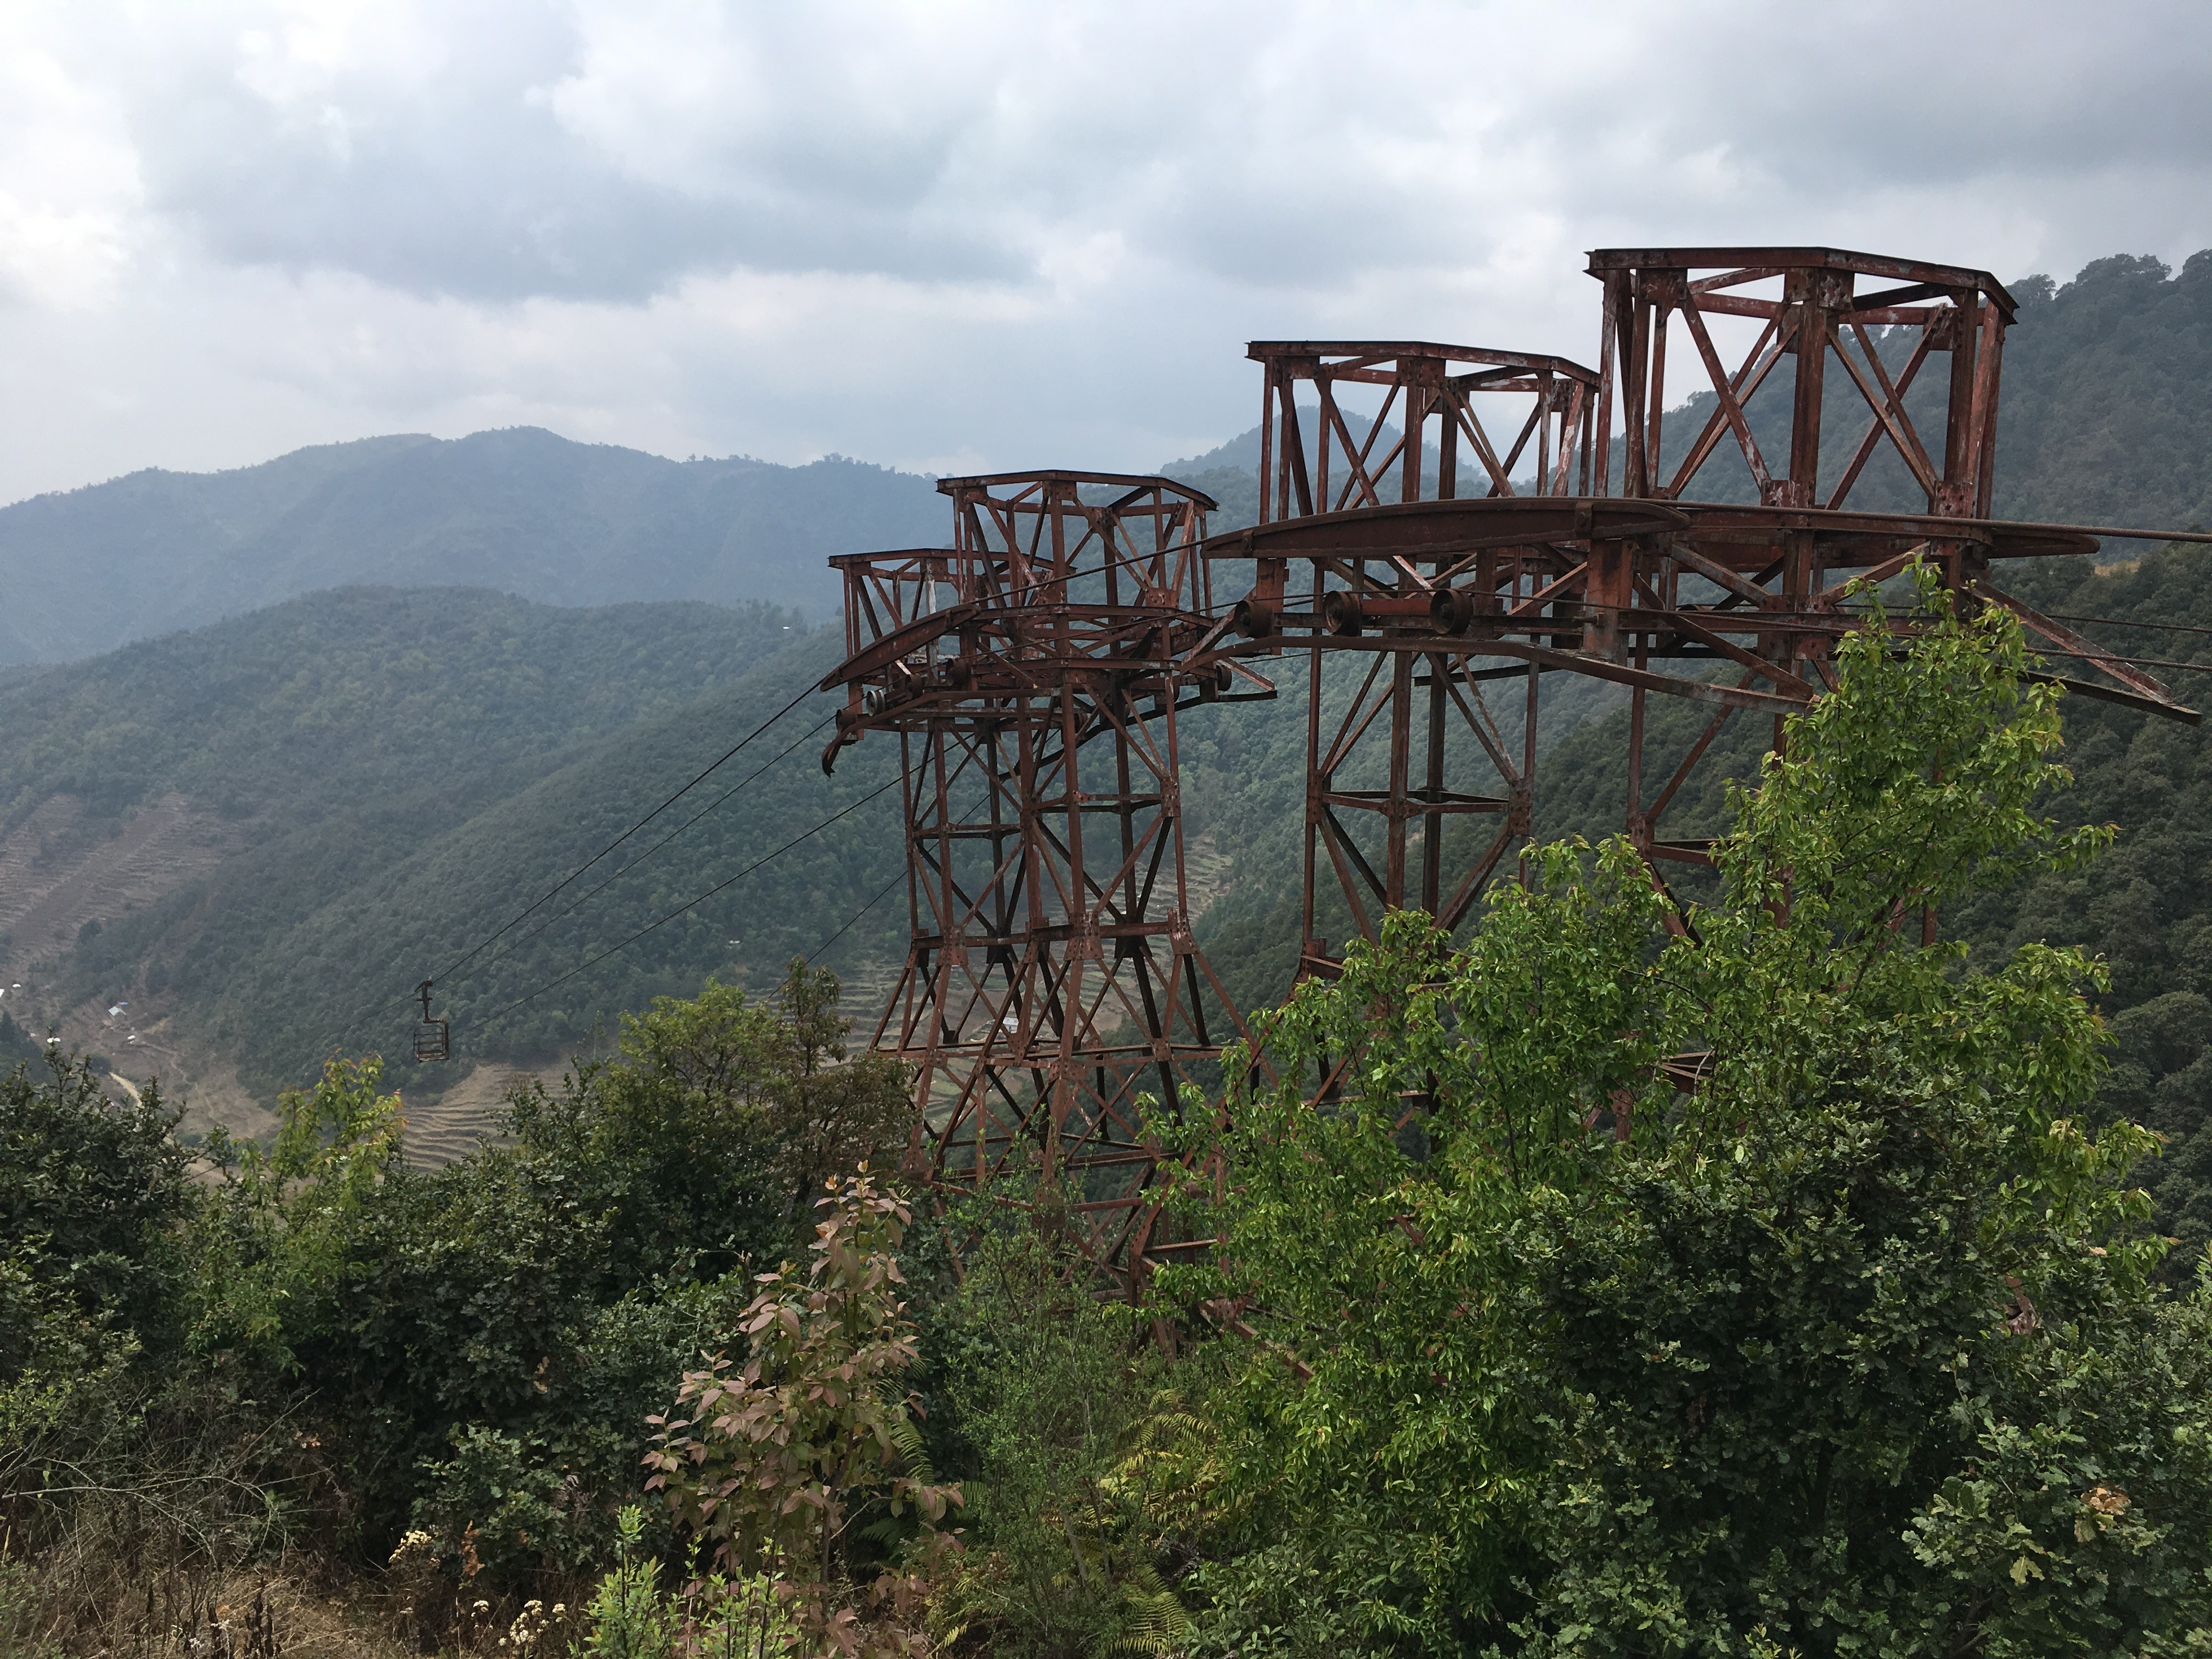 Abandoned cable car, for industrial use